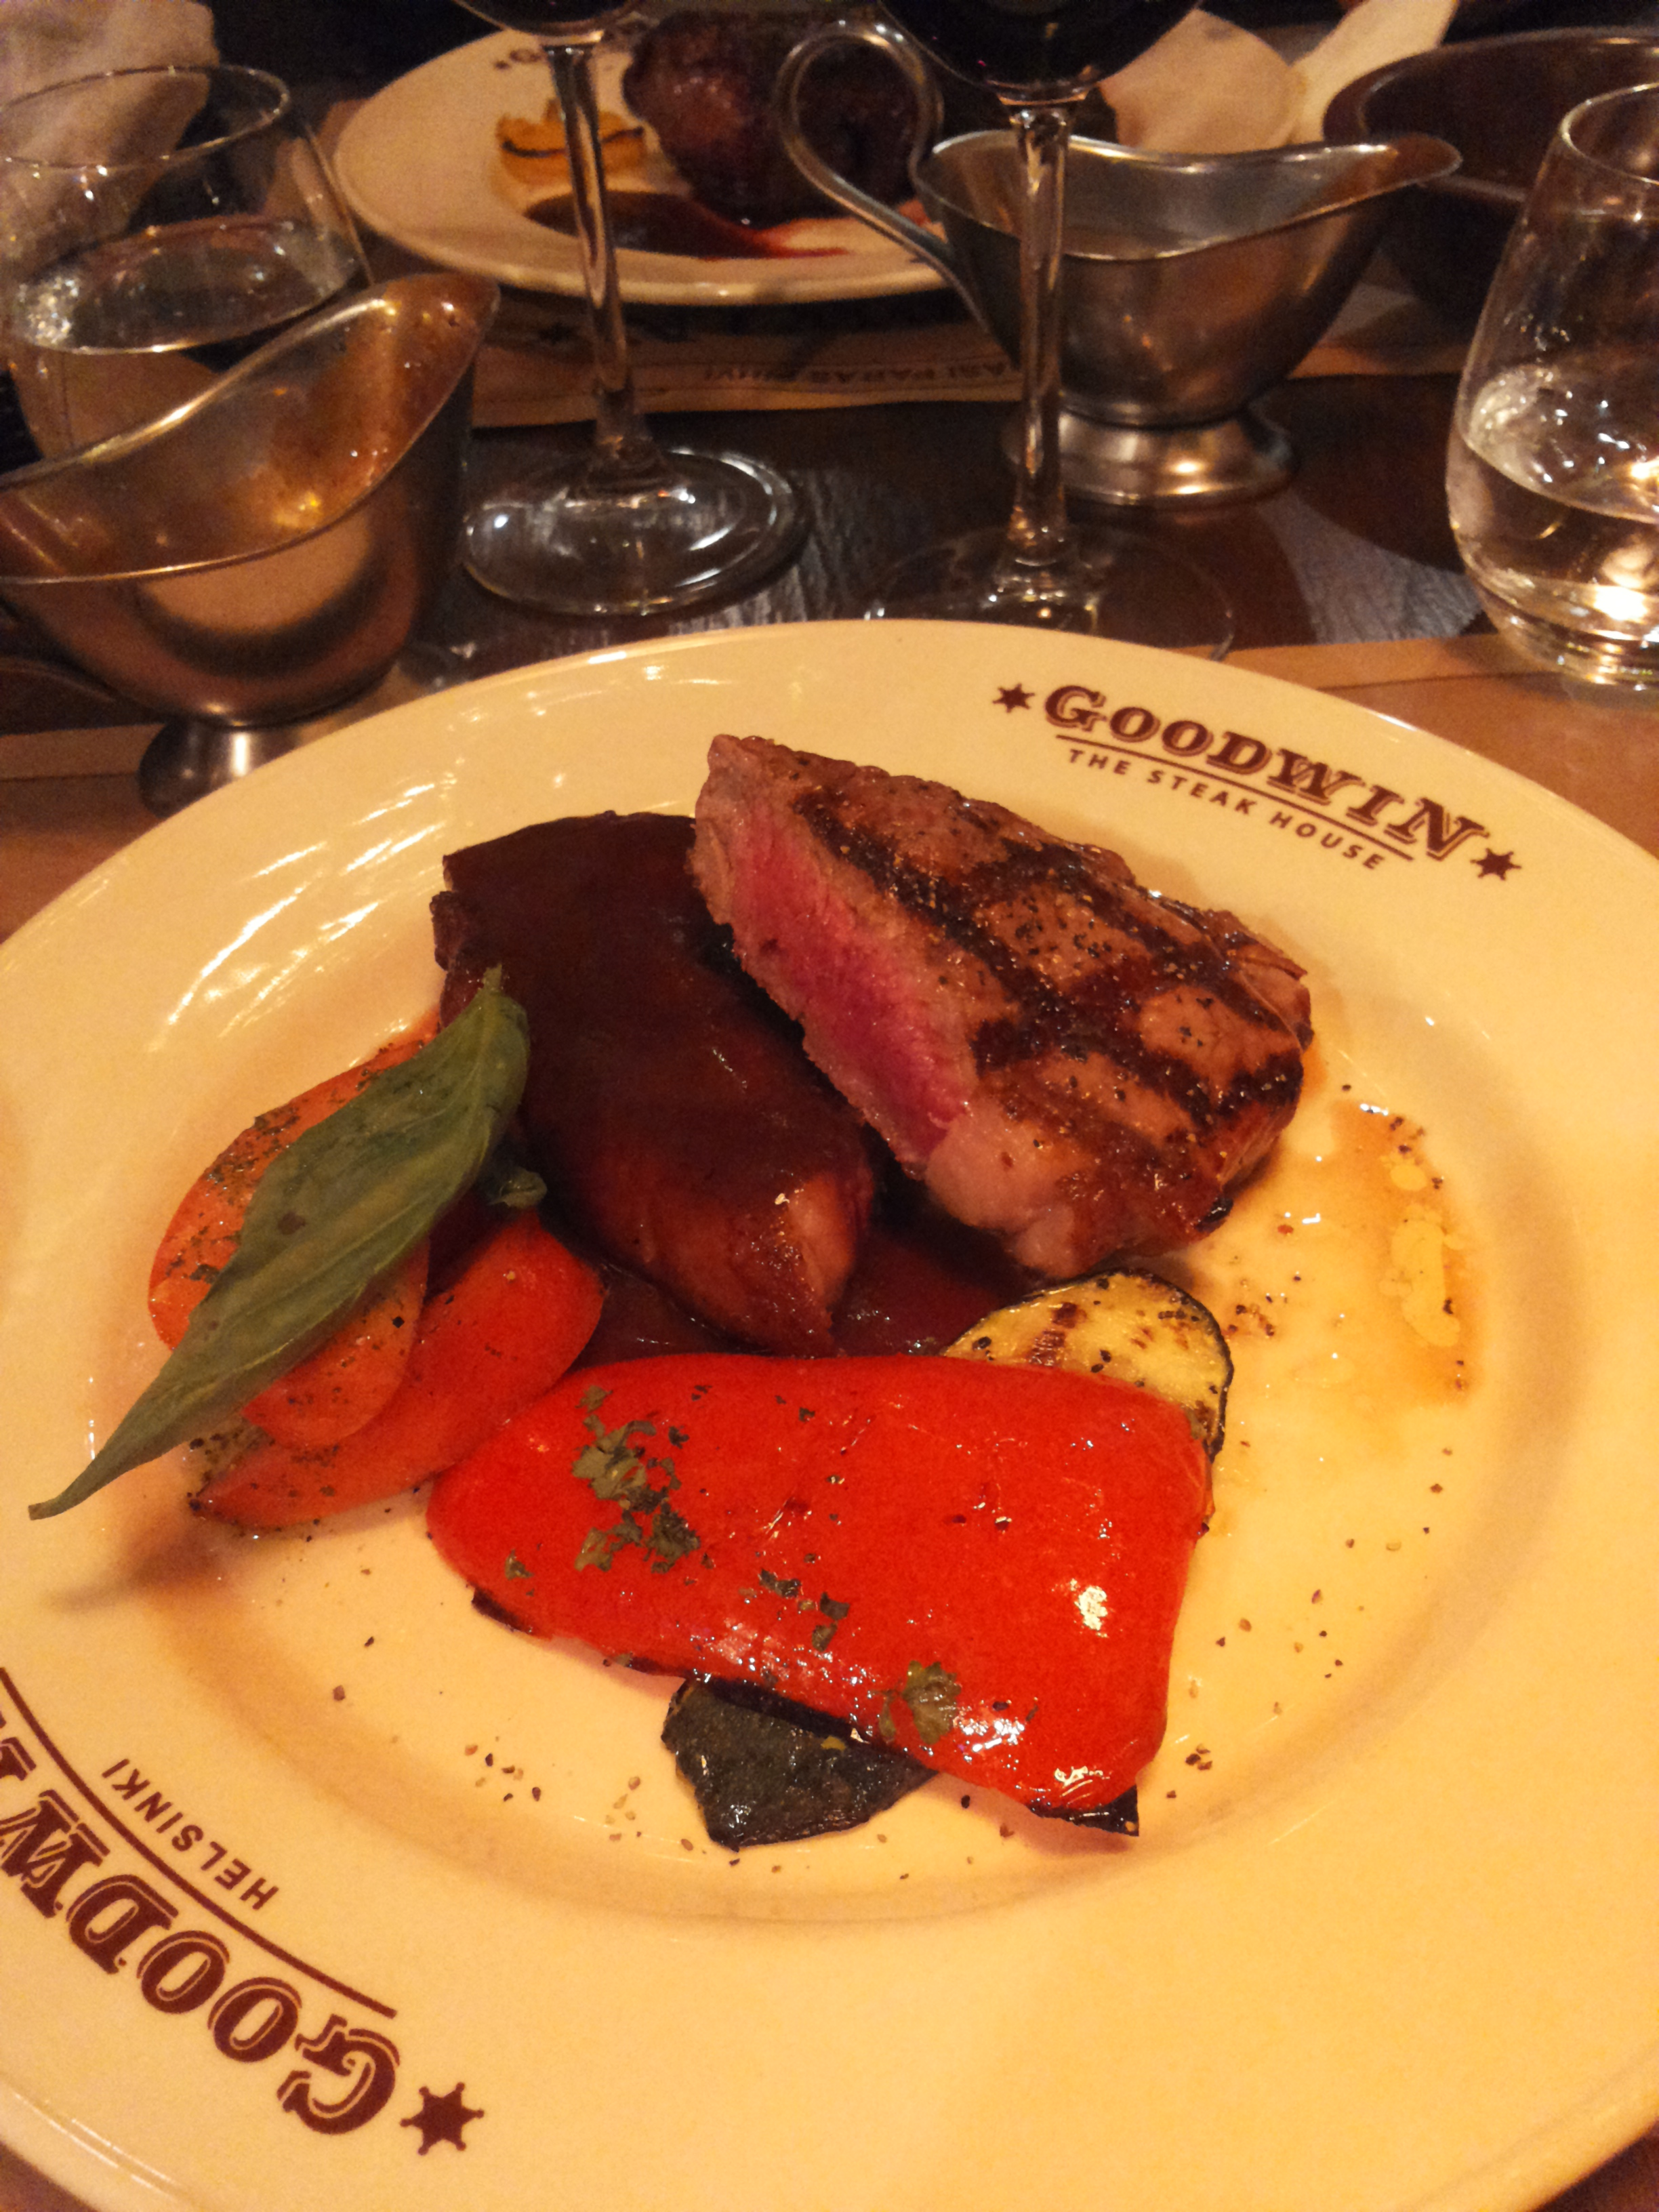 Goodwin the Steak House, Helsingfors